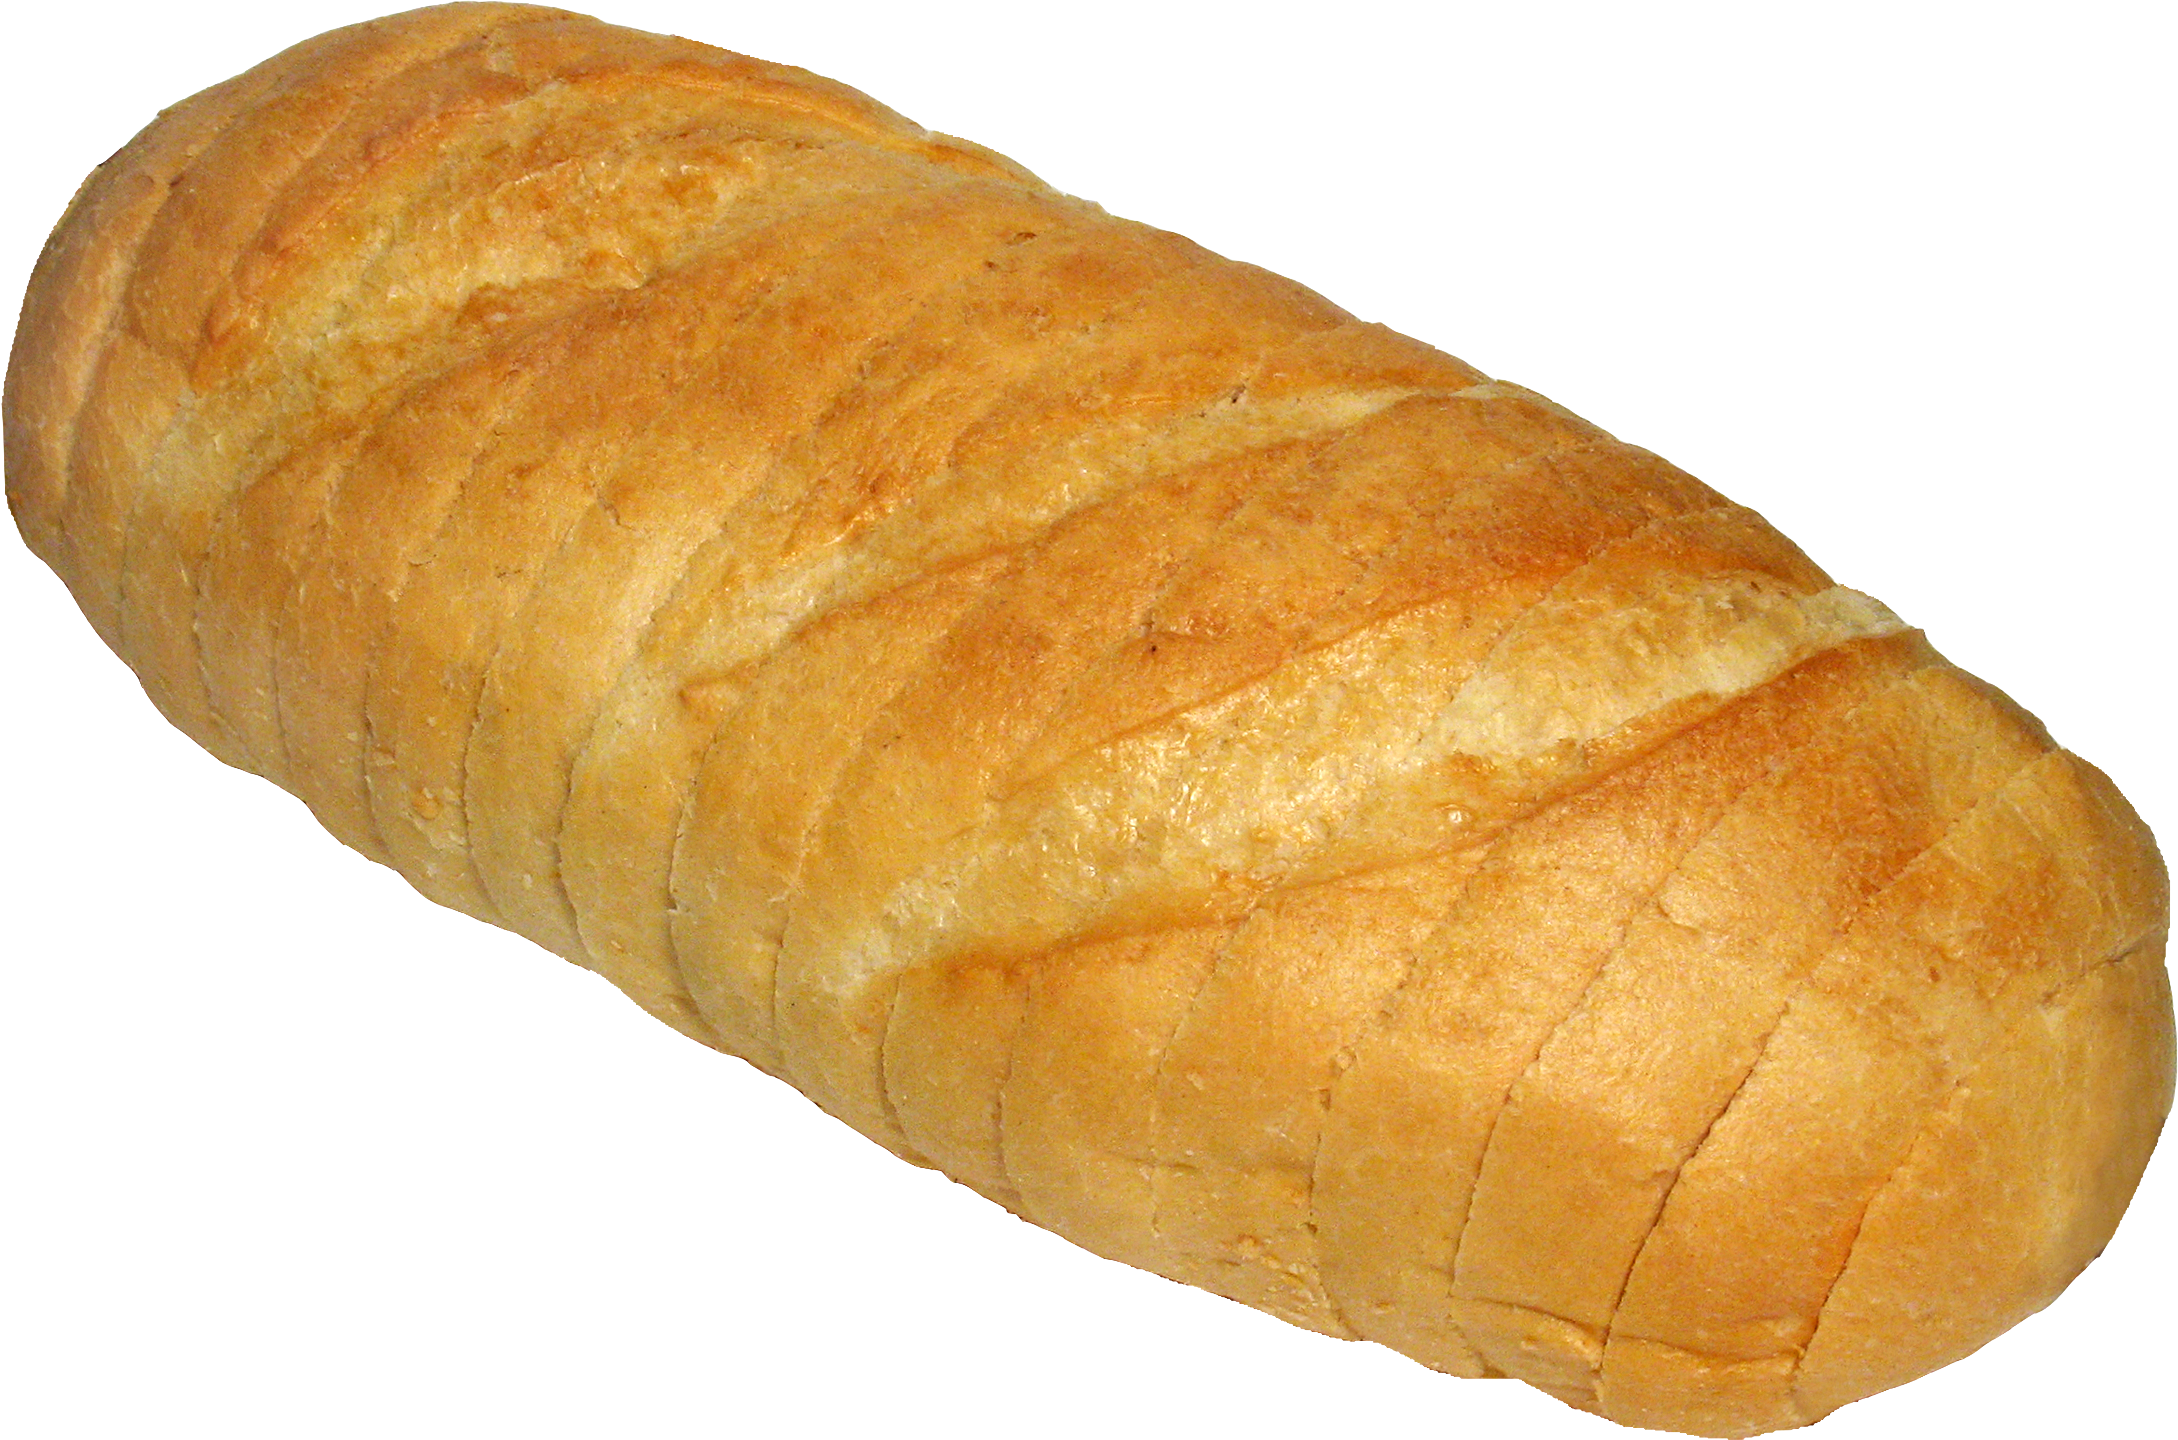 Png image free download. Bread clipart transparent background